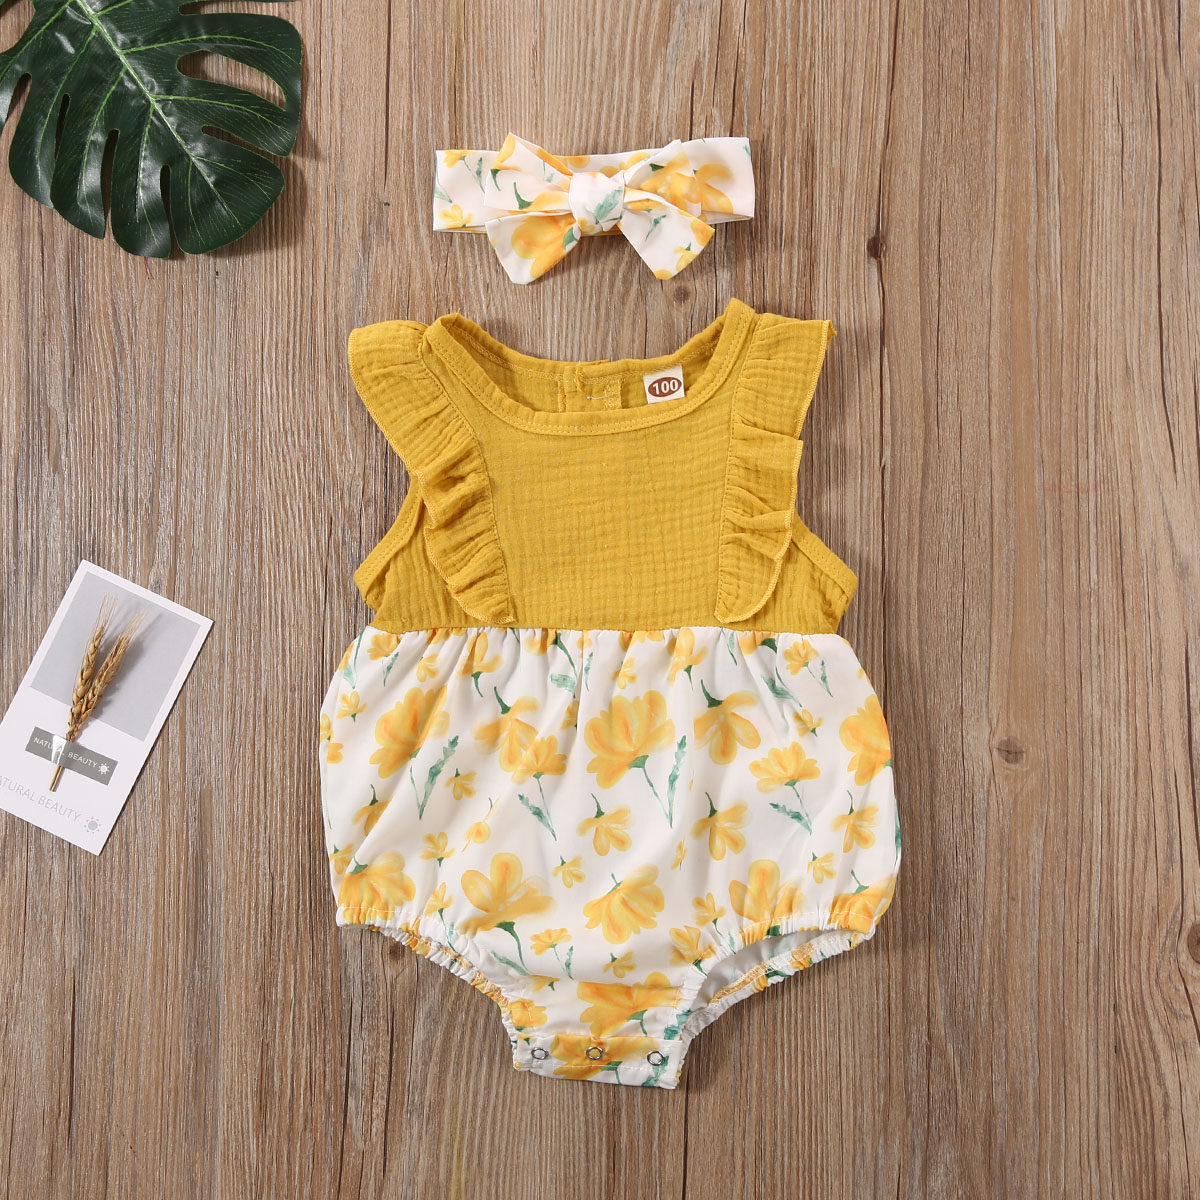 Pudcoco Newborn Baby Girl Clothes Sleeveless Ruffle Flower Print Romper Jumpsuit Headband 2Pcs Outfits Cotton Sunsuit Clothes